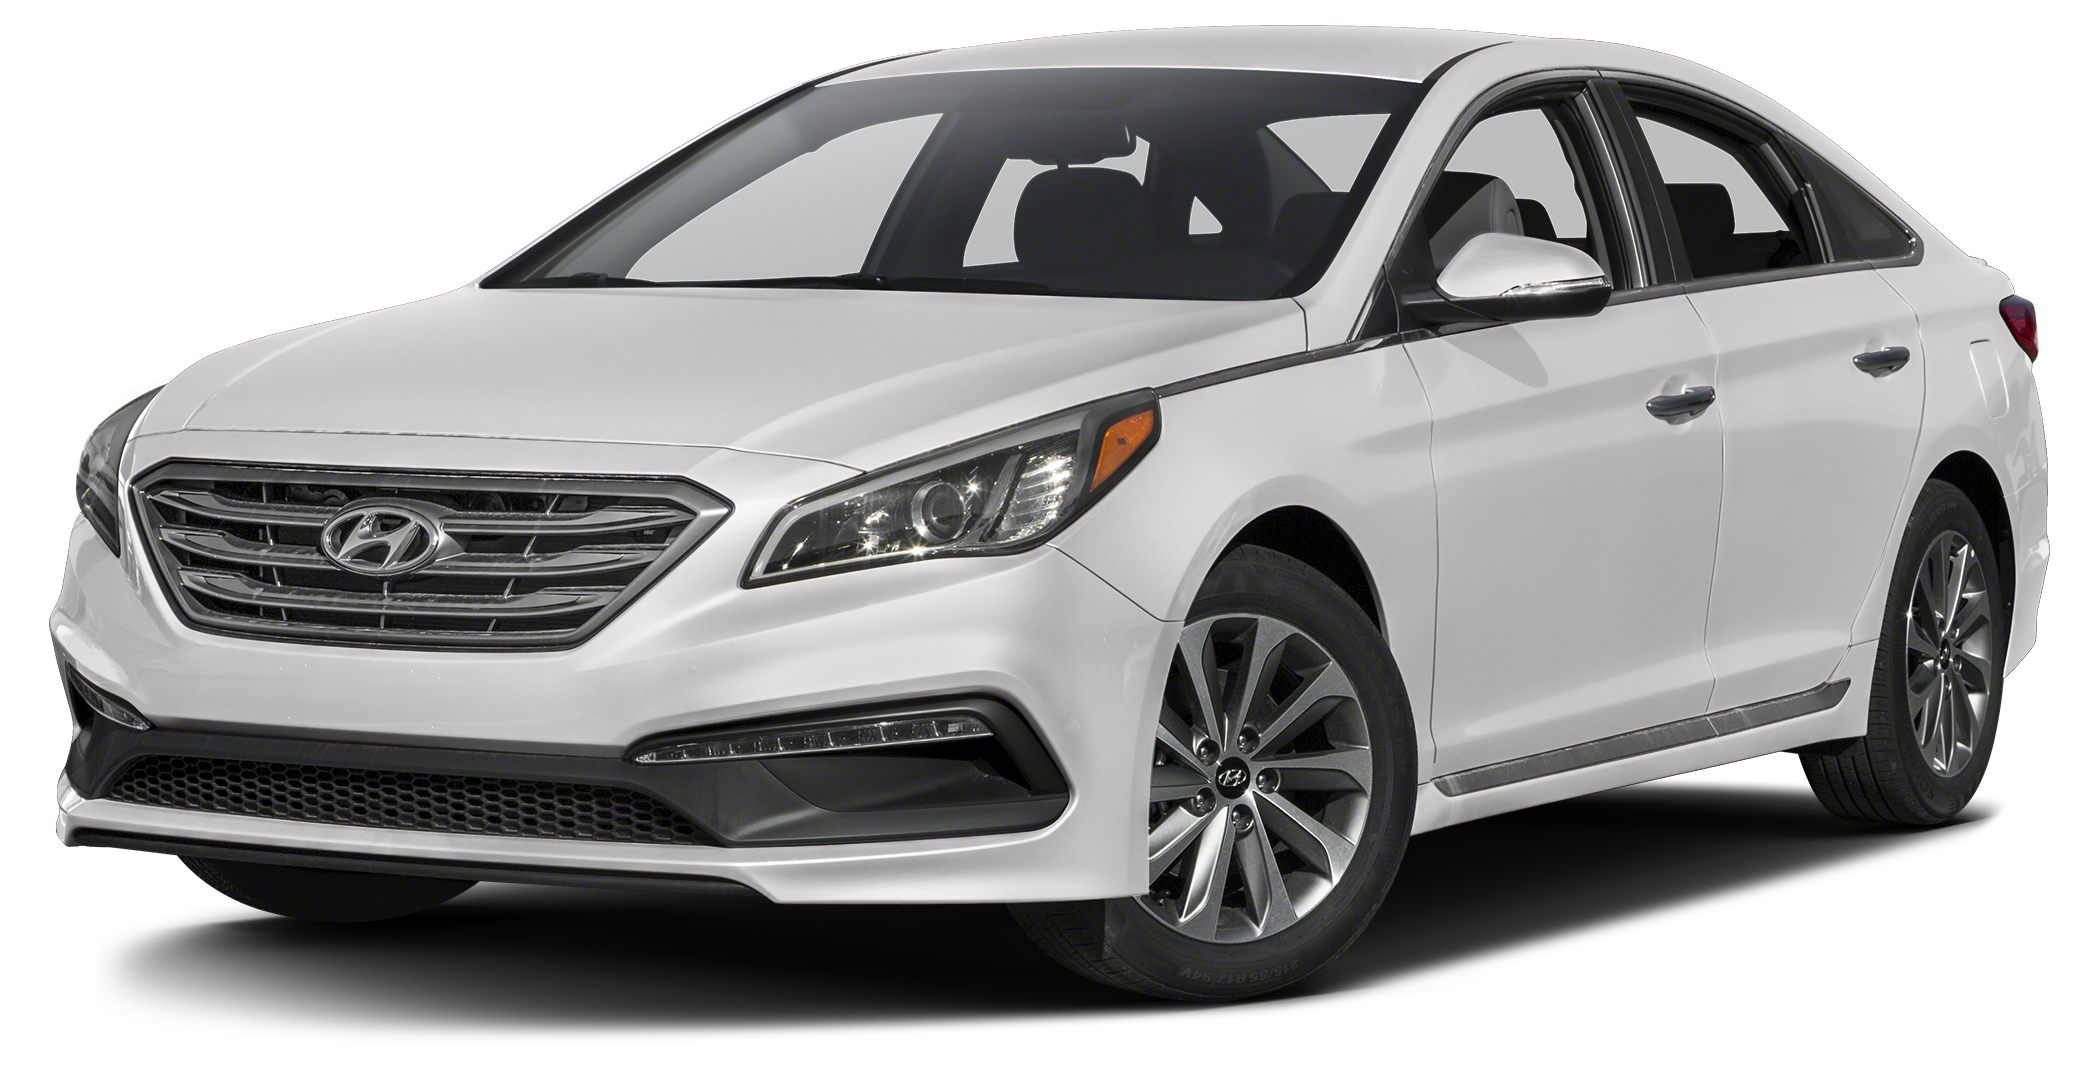 2015 Hyundai Sonata Sport Why Buy From Gettel Hyundai of Lakewood 3 Day Exchange Policy on any ve